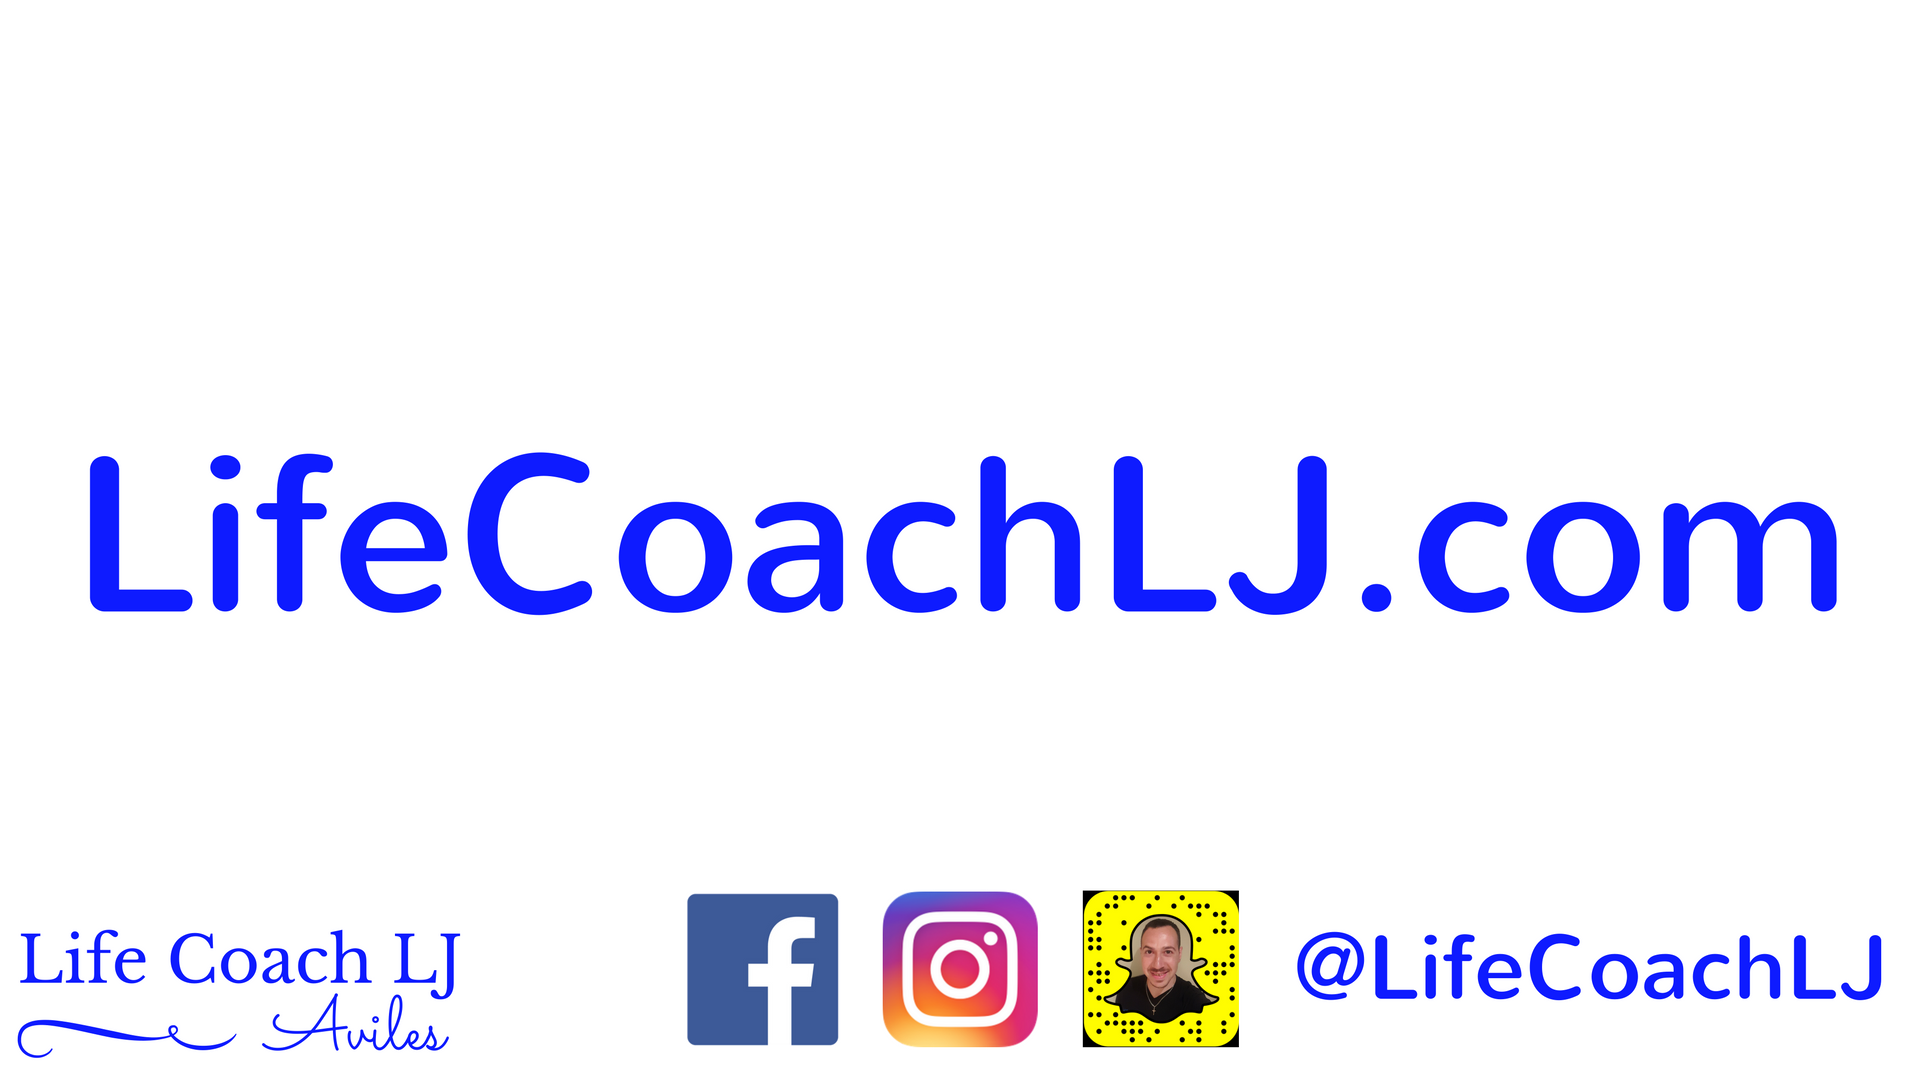 Life Coach LJ Video Ending Image